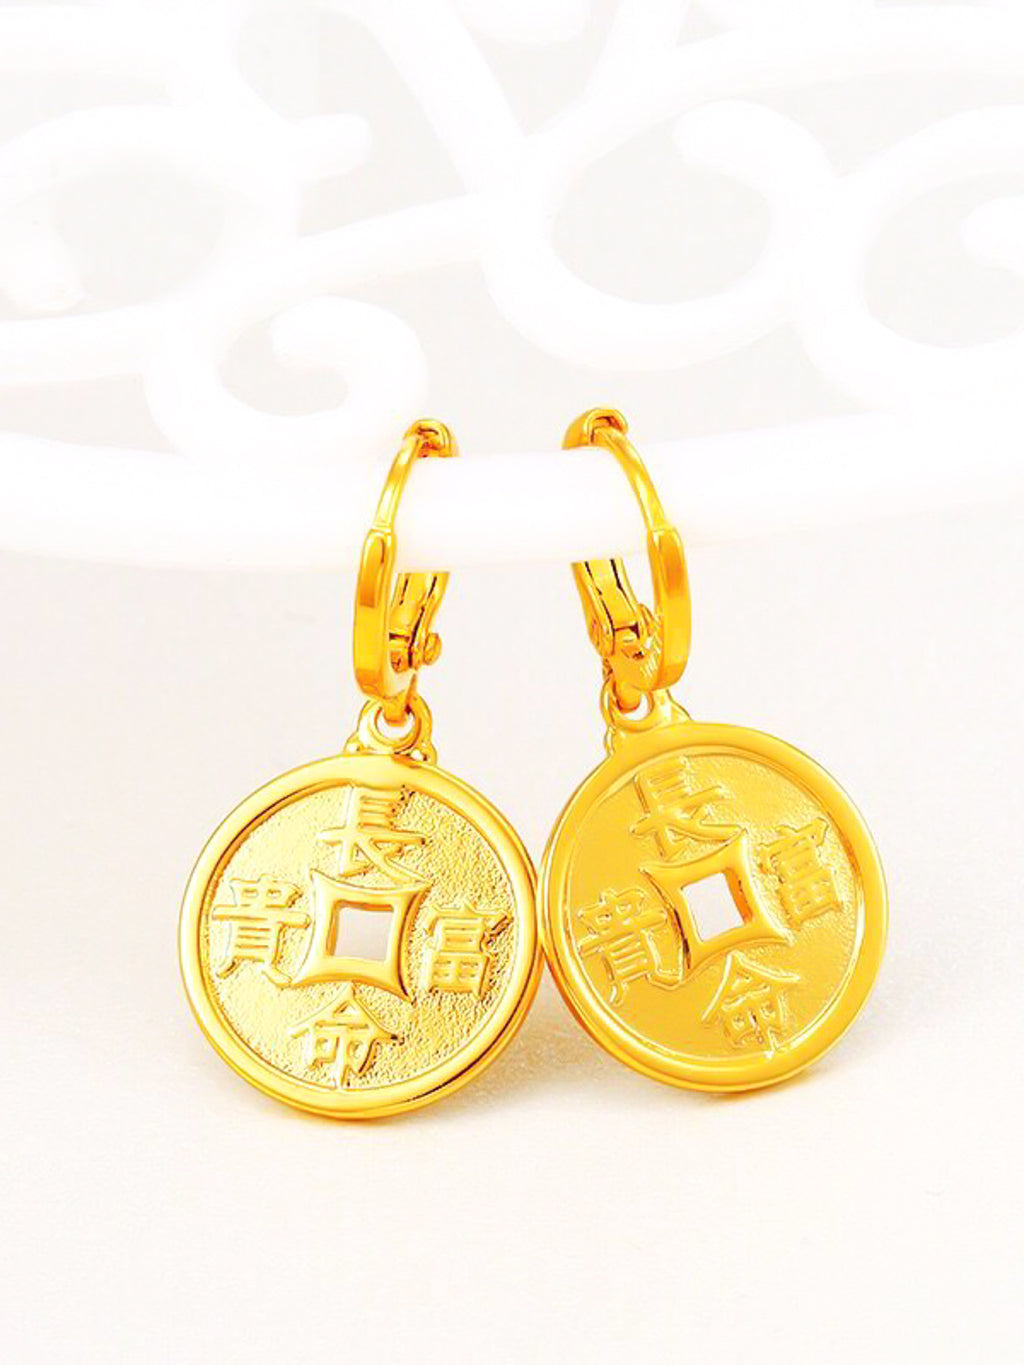 Chinese Golden Blessings Earrings 长命富贵/出入平安